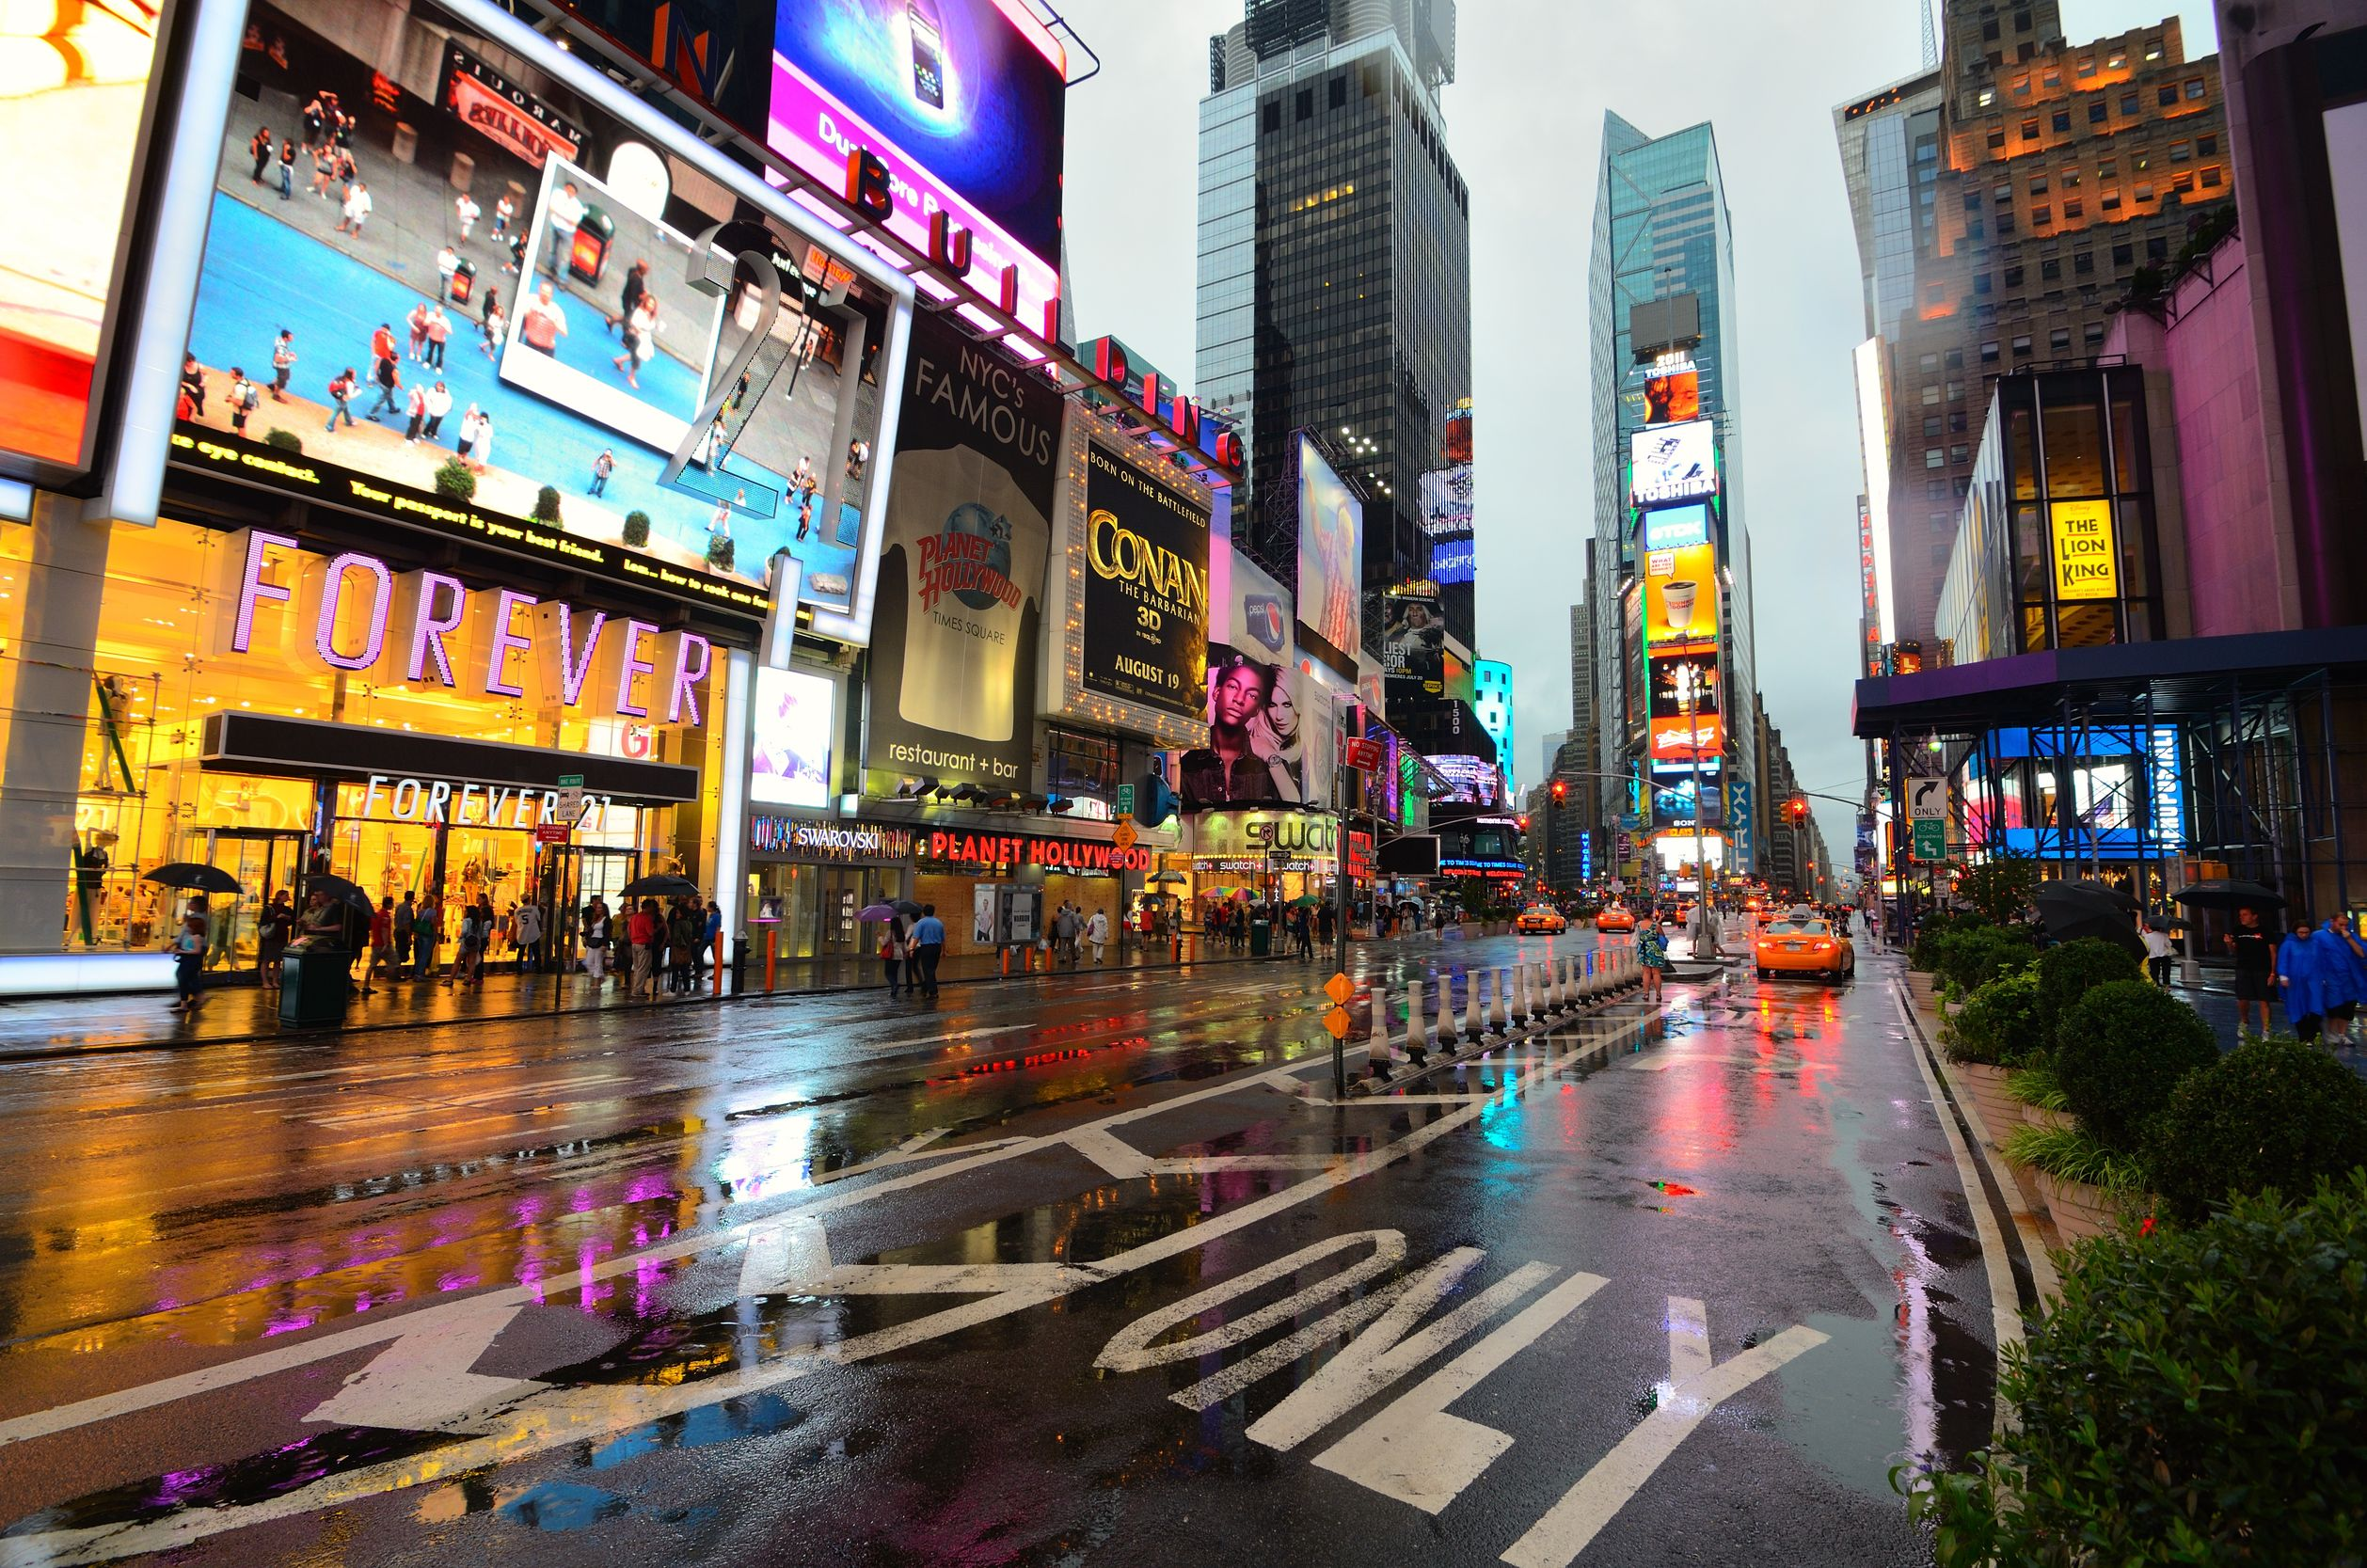 Times Square proper encompasses 42nd to 47th Streets, from Broadway to Seventh Avenue—but people commonly refer to the area from around 40th to 53th Streets, between Sixth and Eighth Avenues, as Times Square.